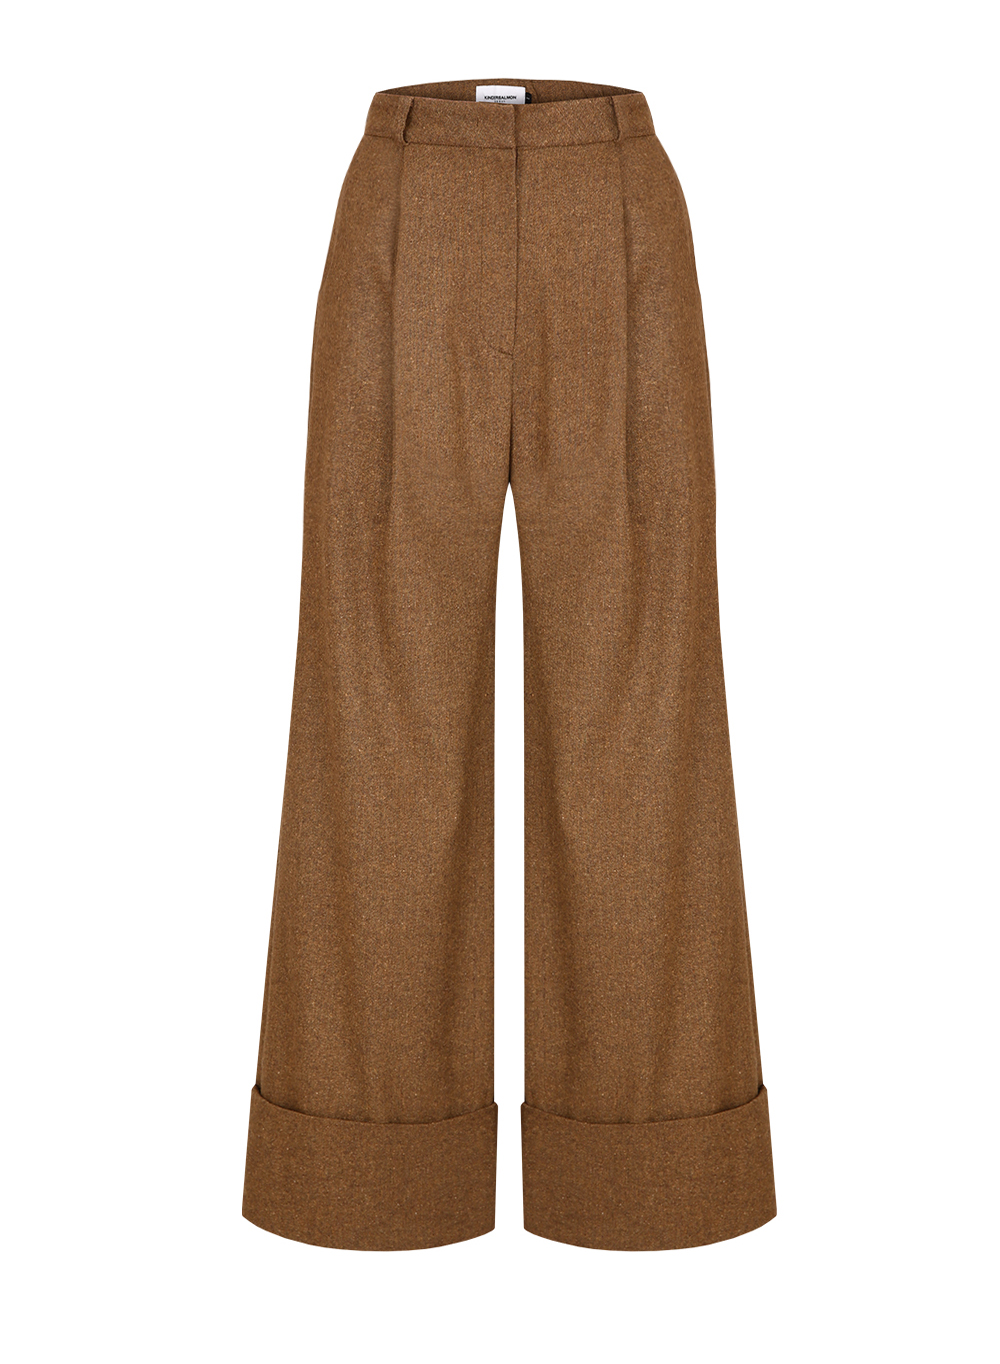 FW18 WIDE PANTS KHAKI